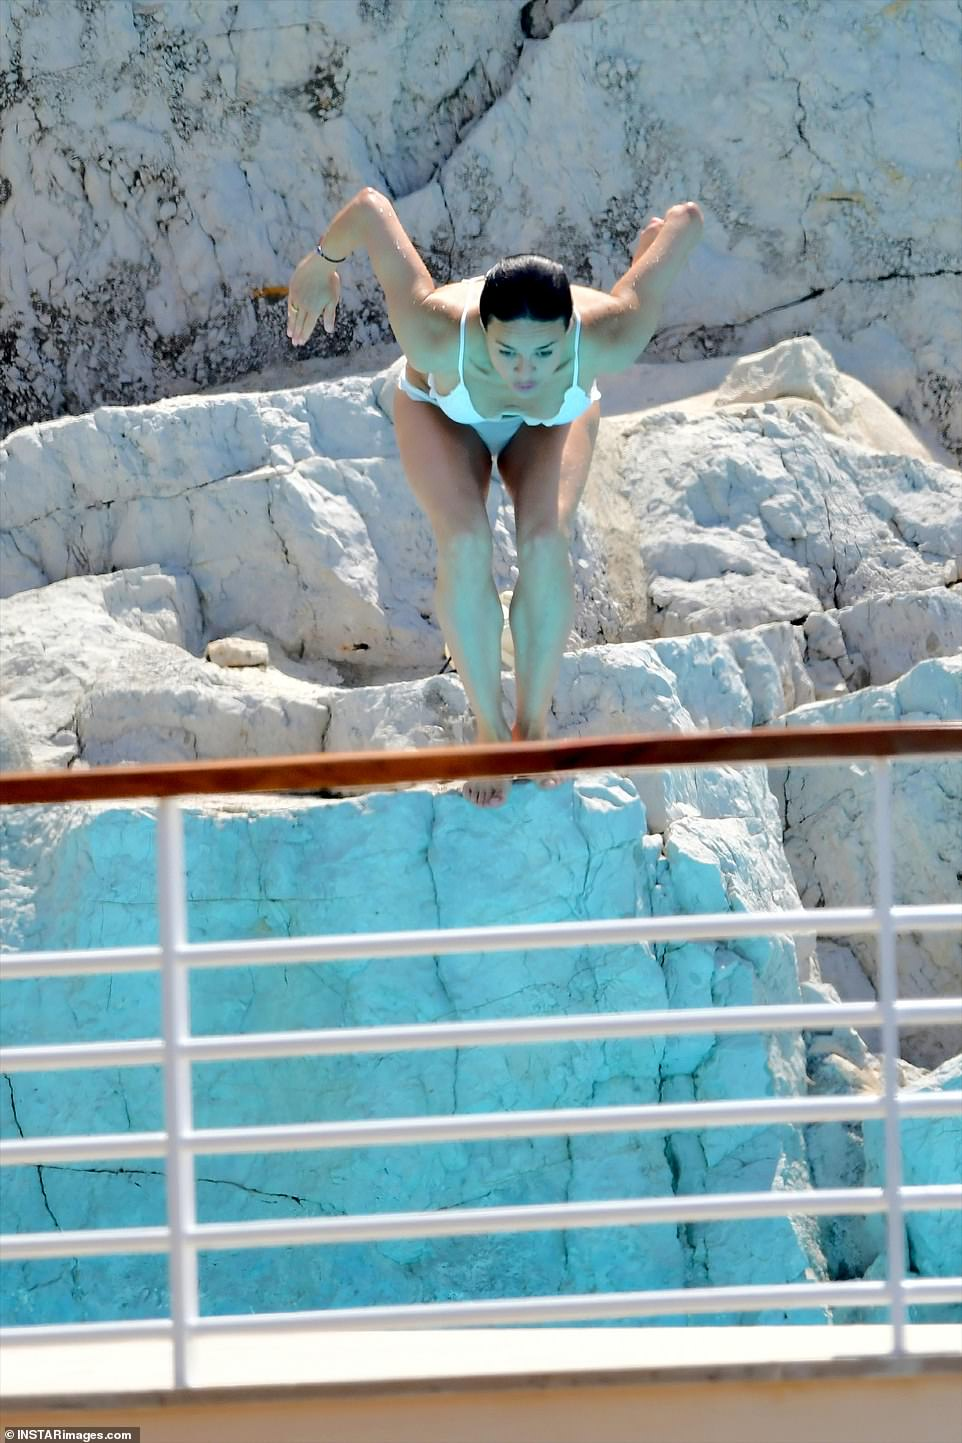 Taking a leap: Michelle showed off her impressive diving skills as she jumped into the water